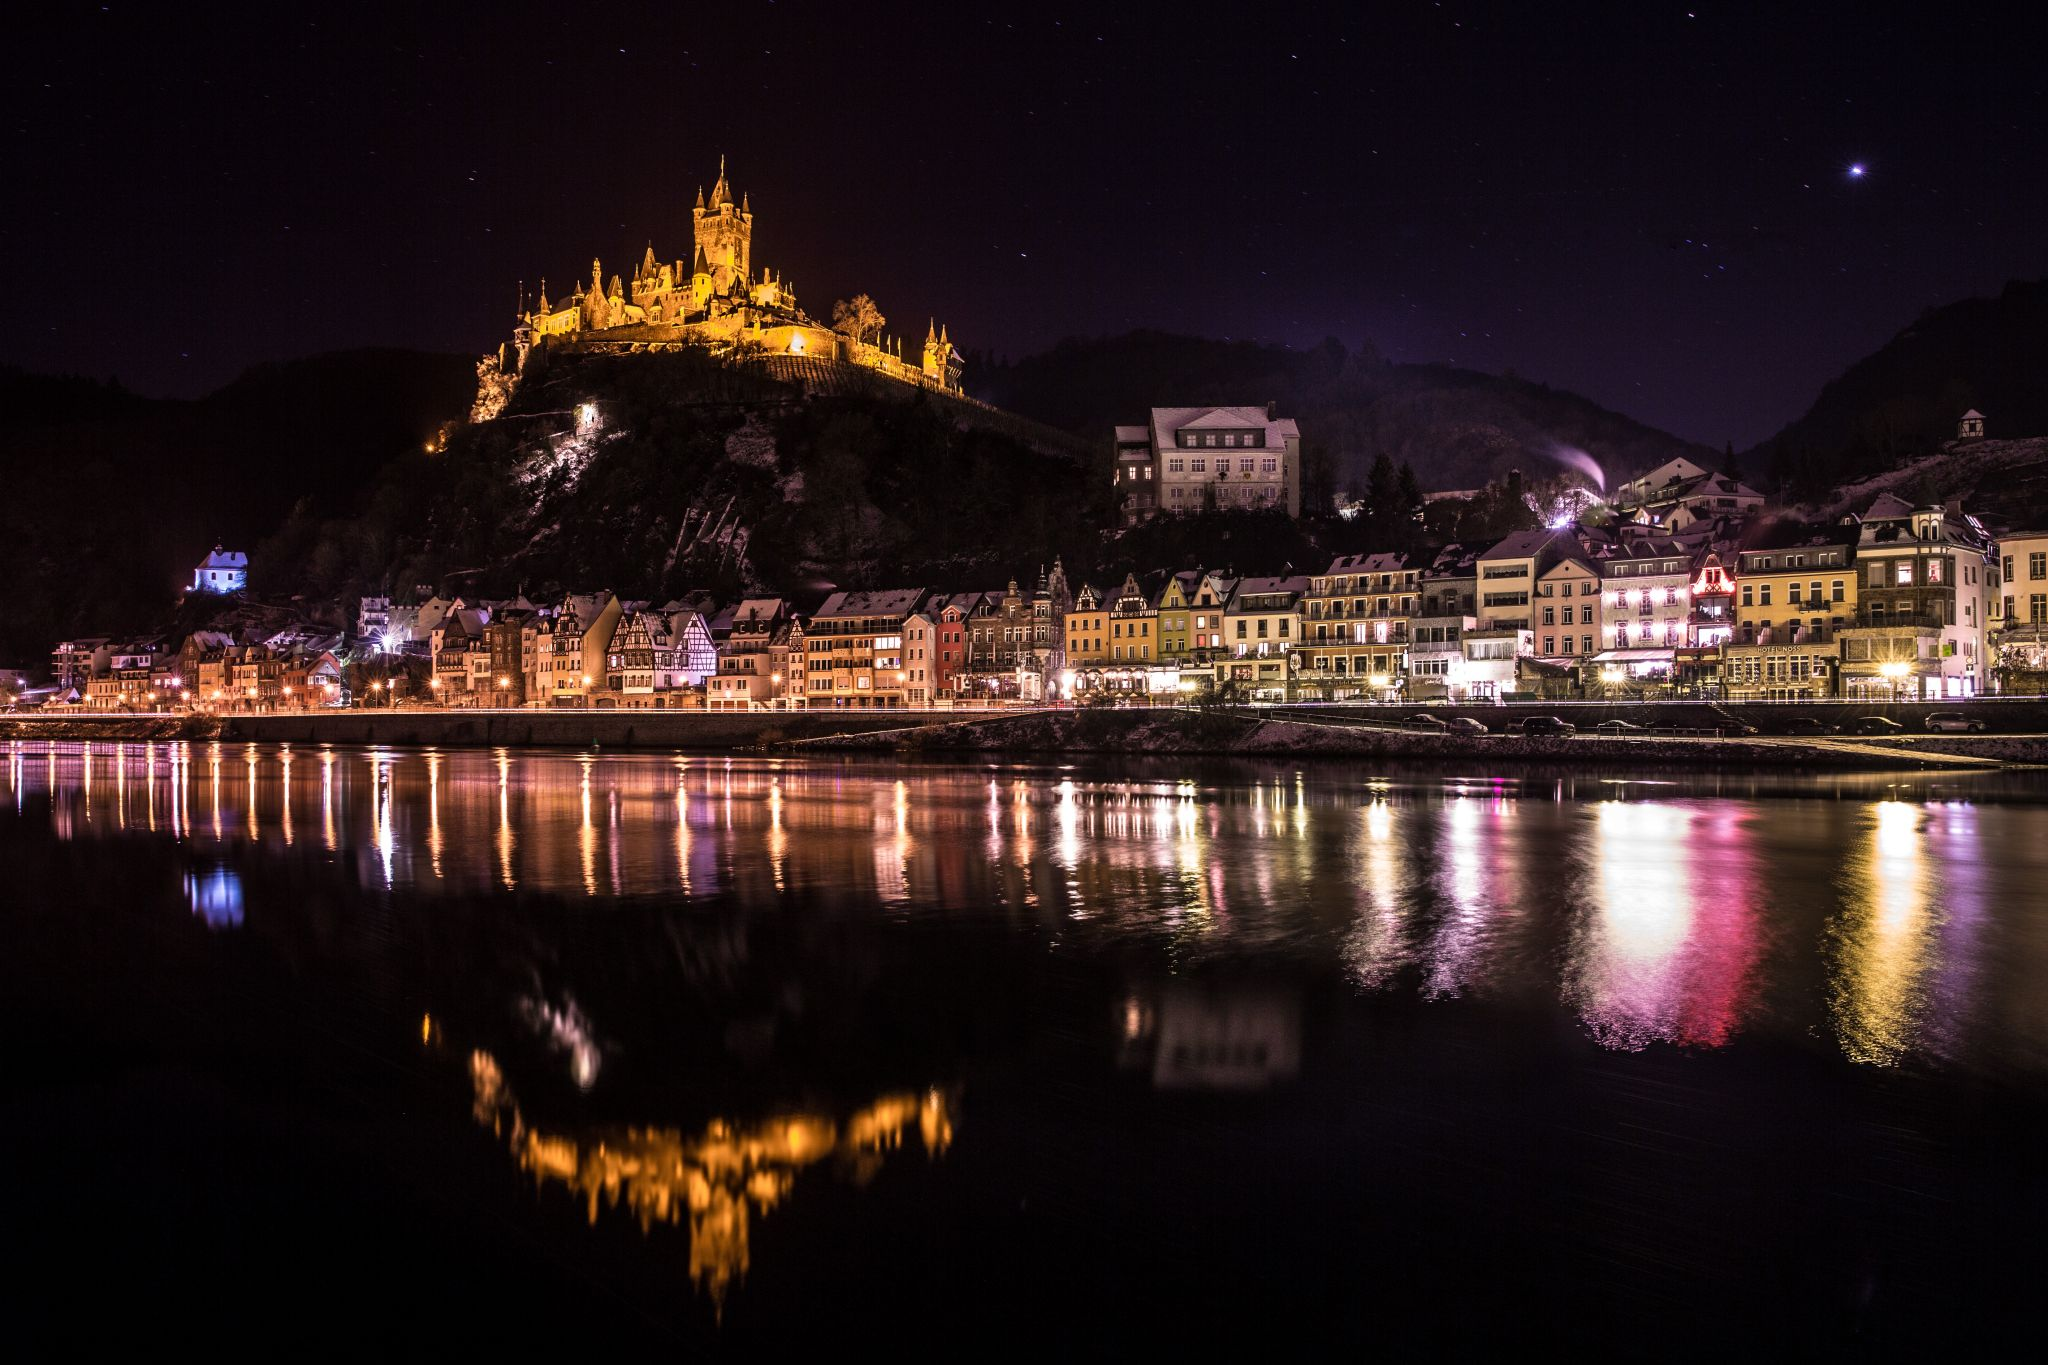 City of Cochem, Germany